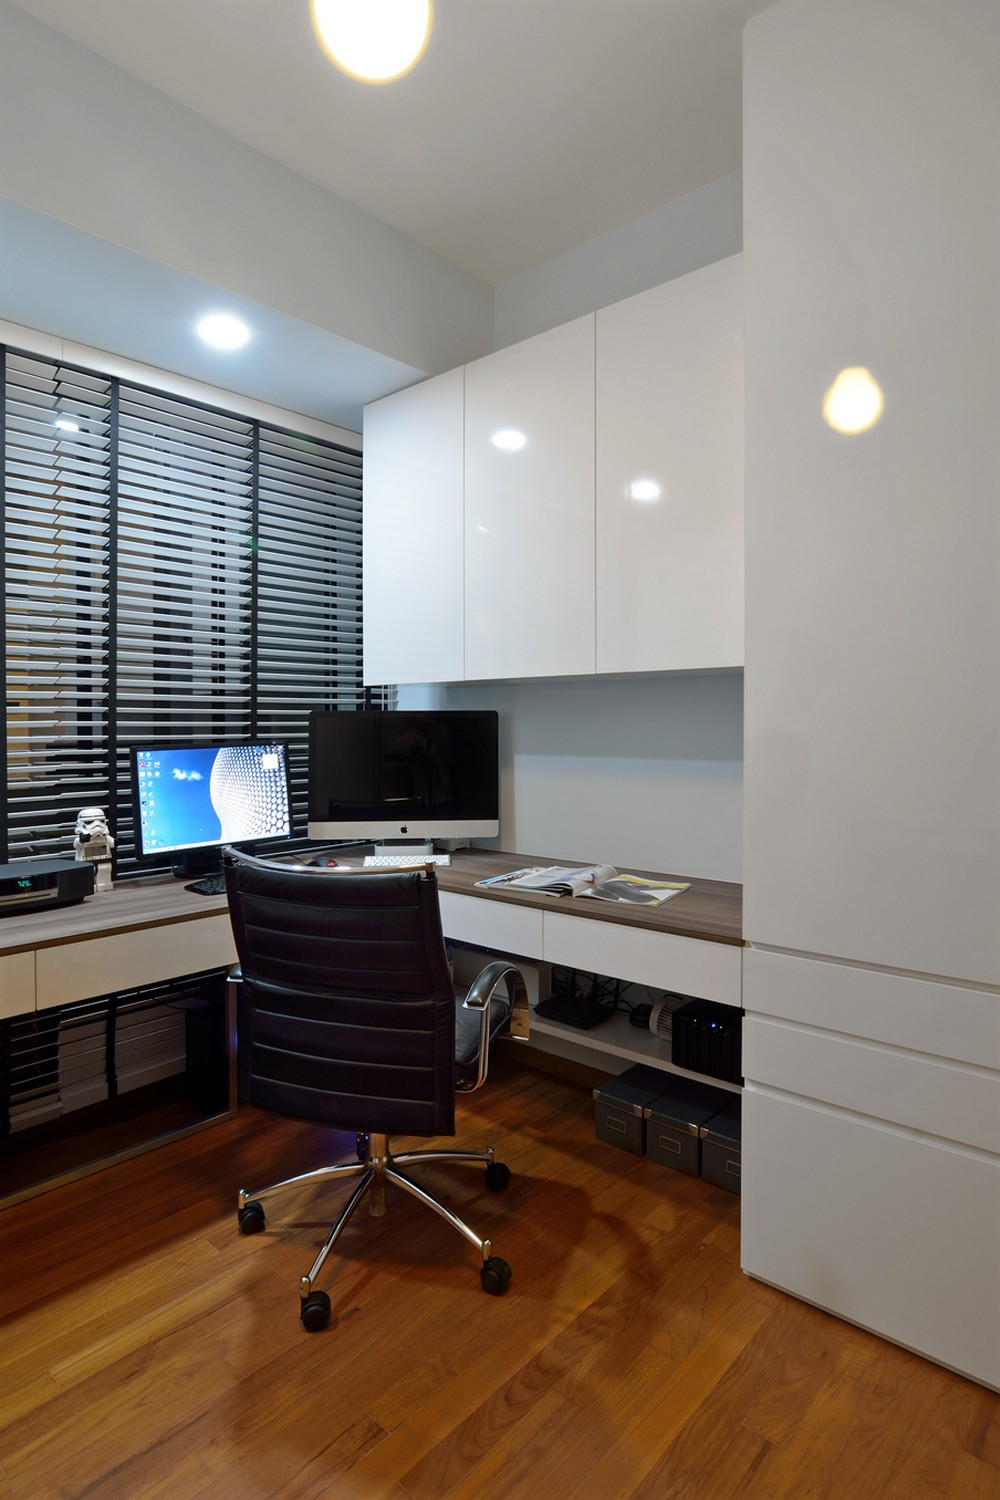 Awesome minimalist apartment design the beauty of - Singapore post office tracking number ...